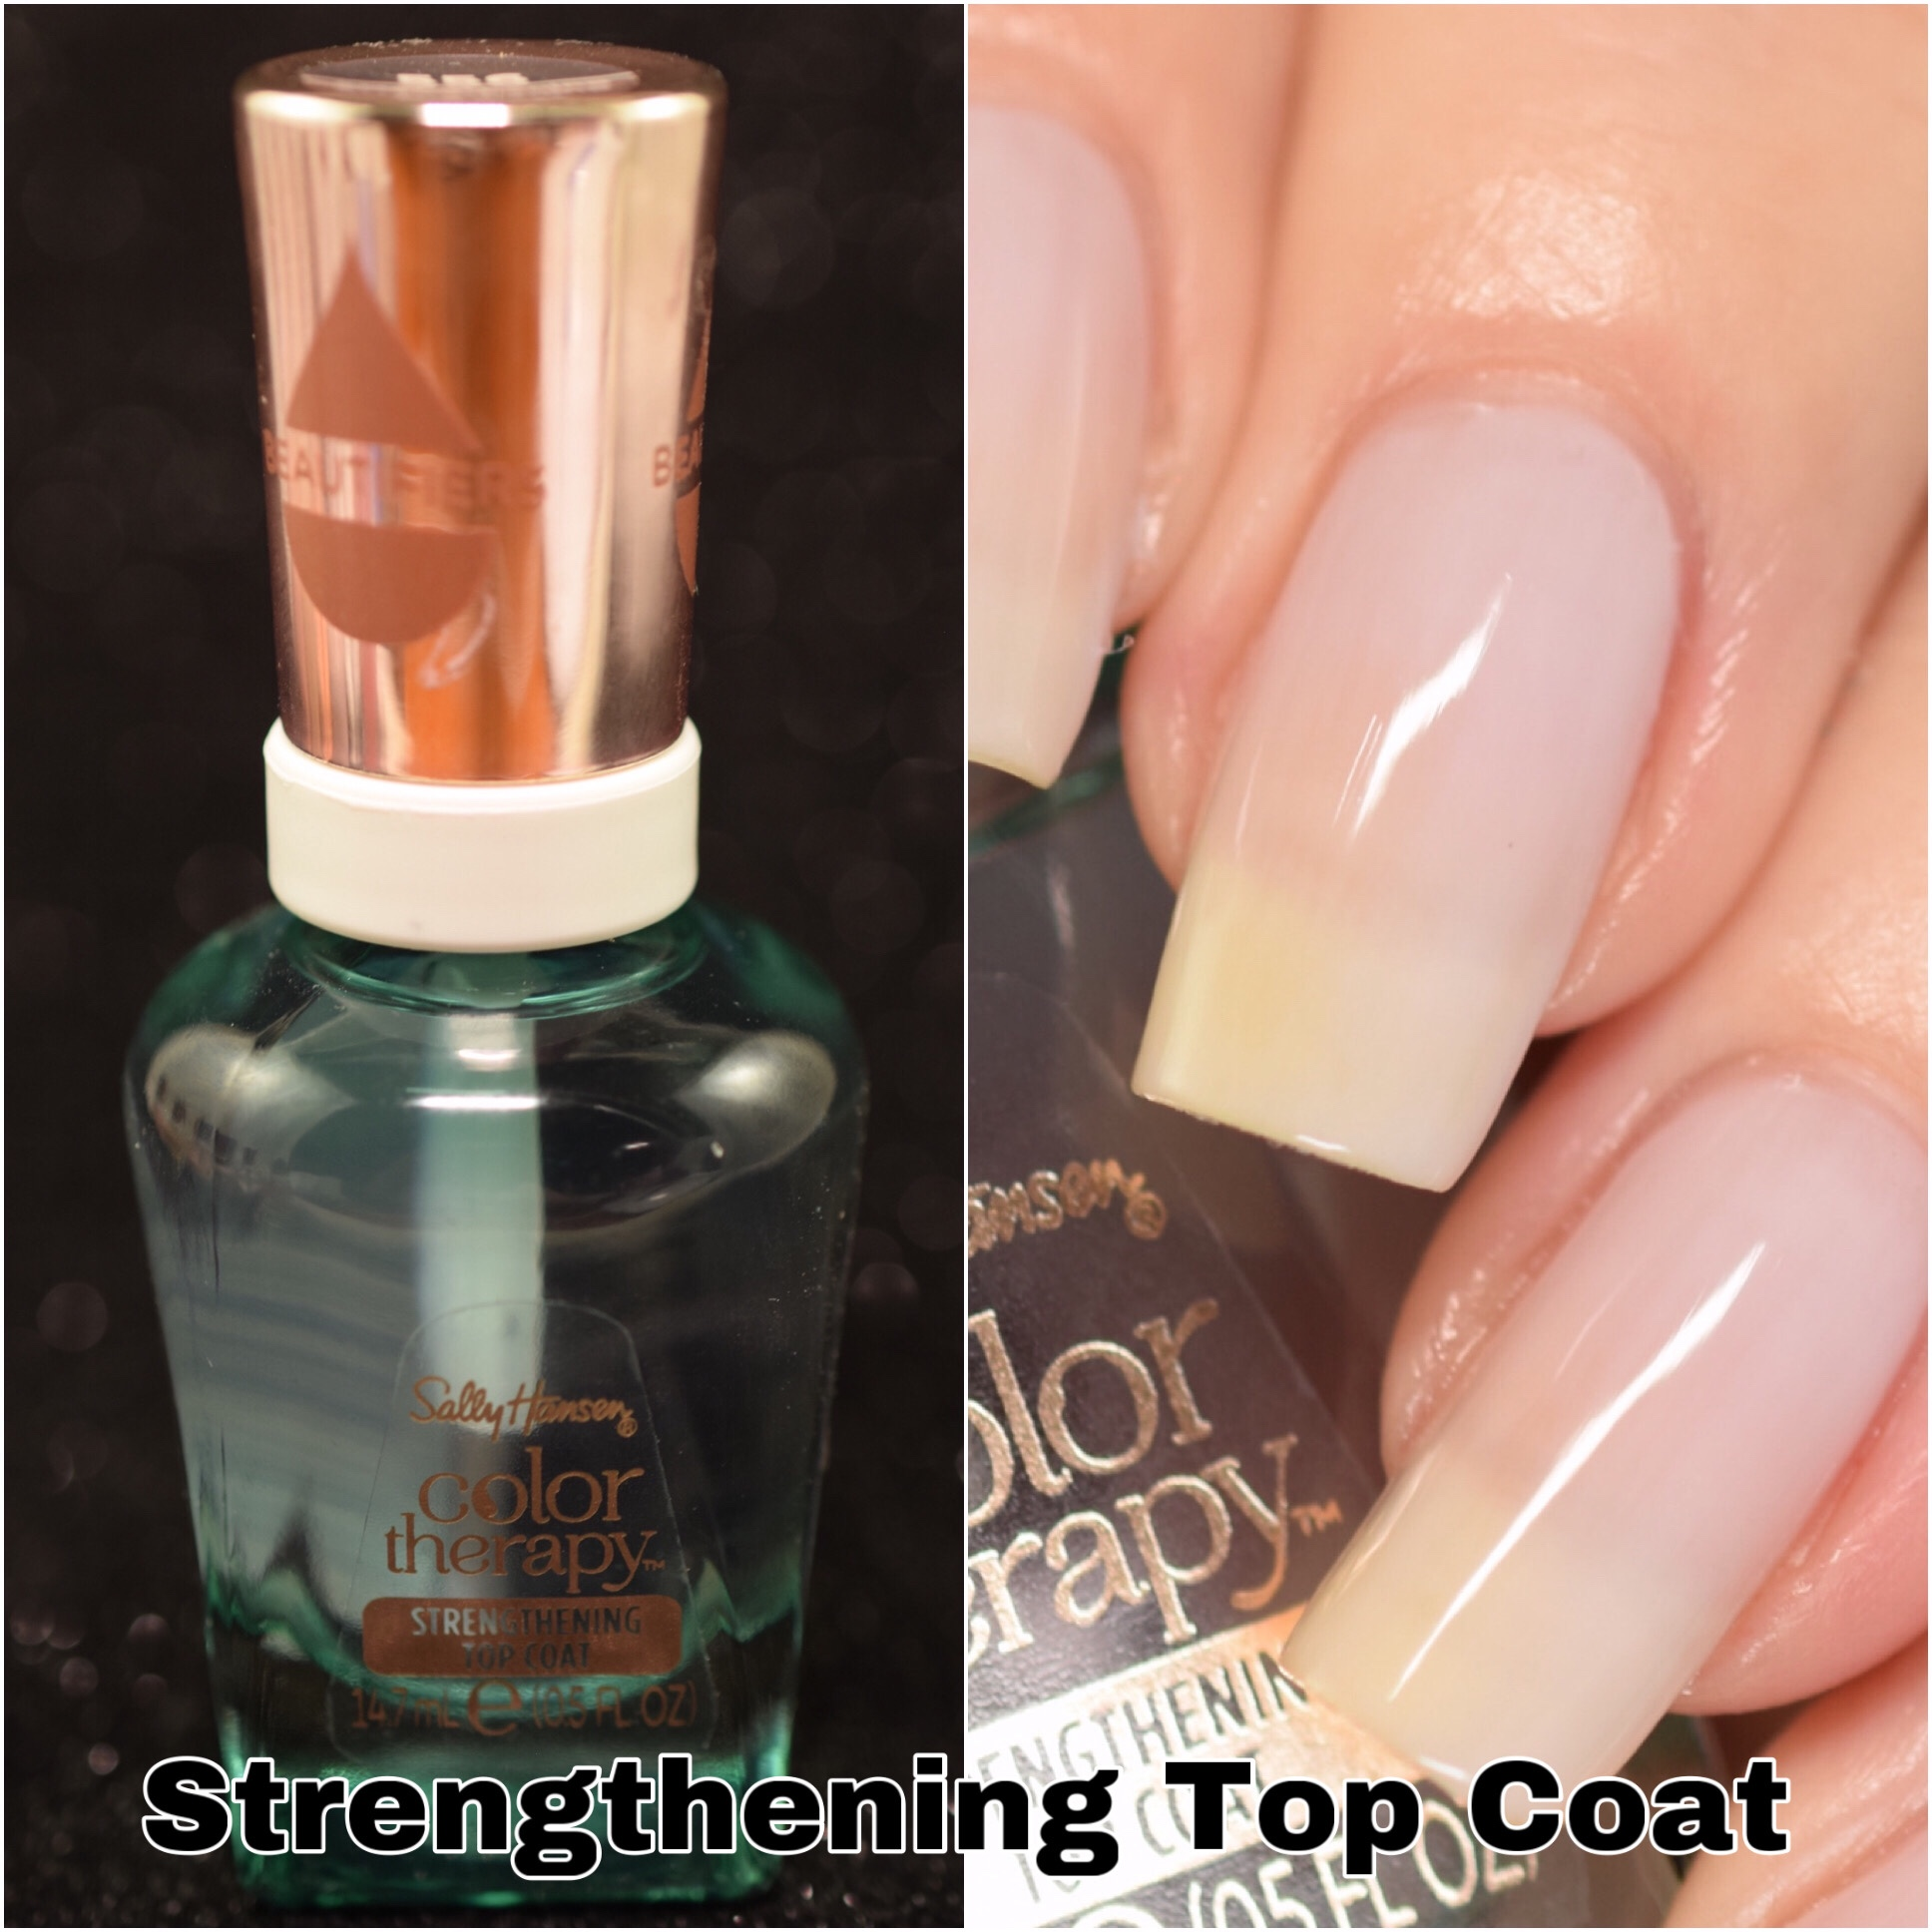 Sally Hansen Color Therapy Strengthening Top Coat